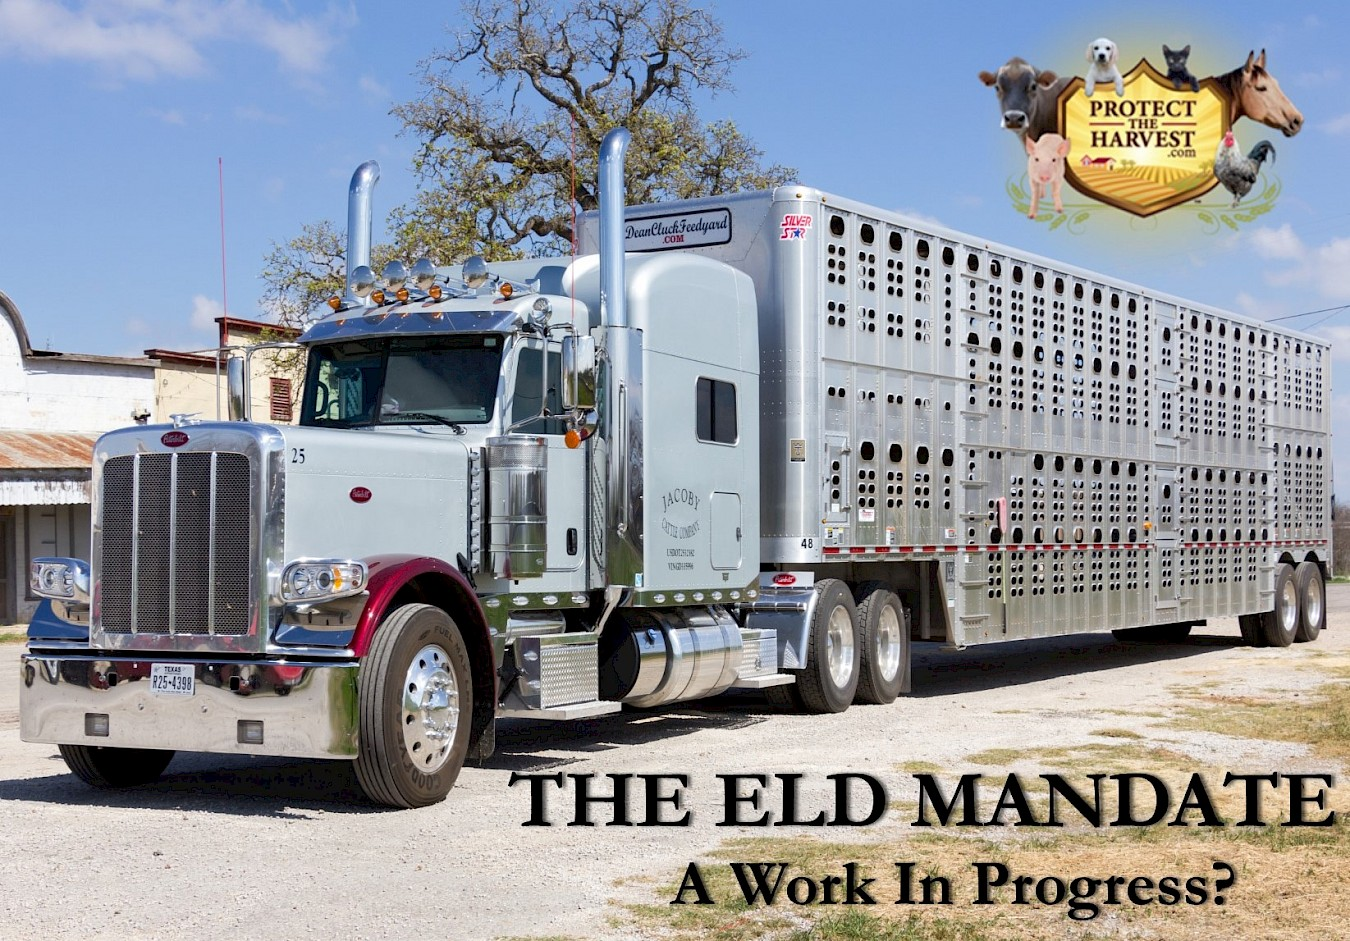 The ELD Mandate - A Work In Progress?